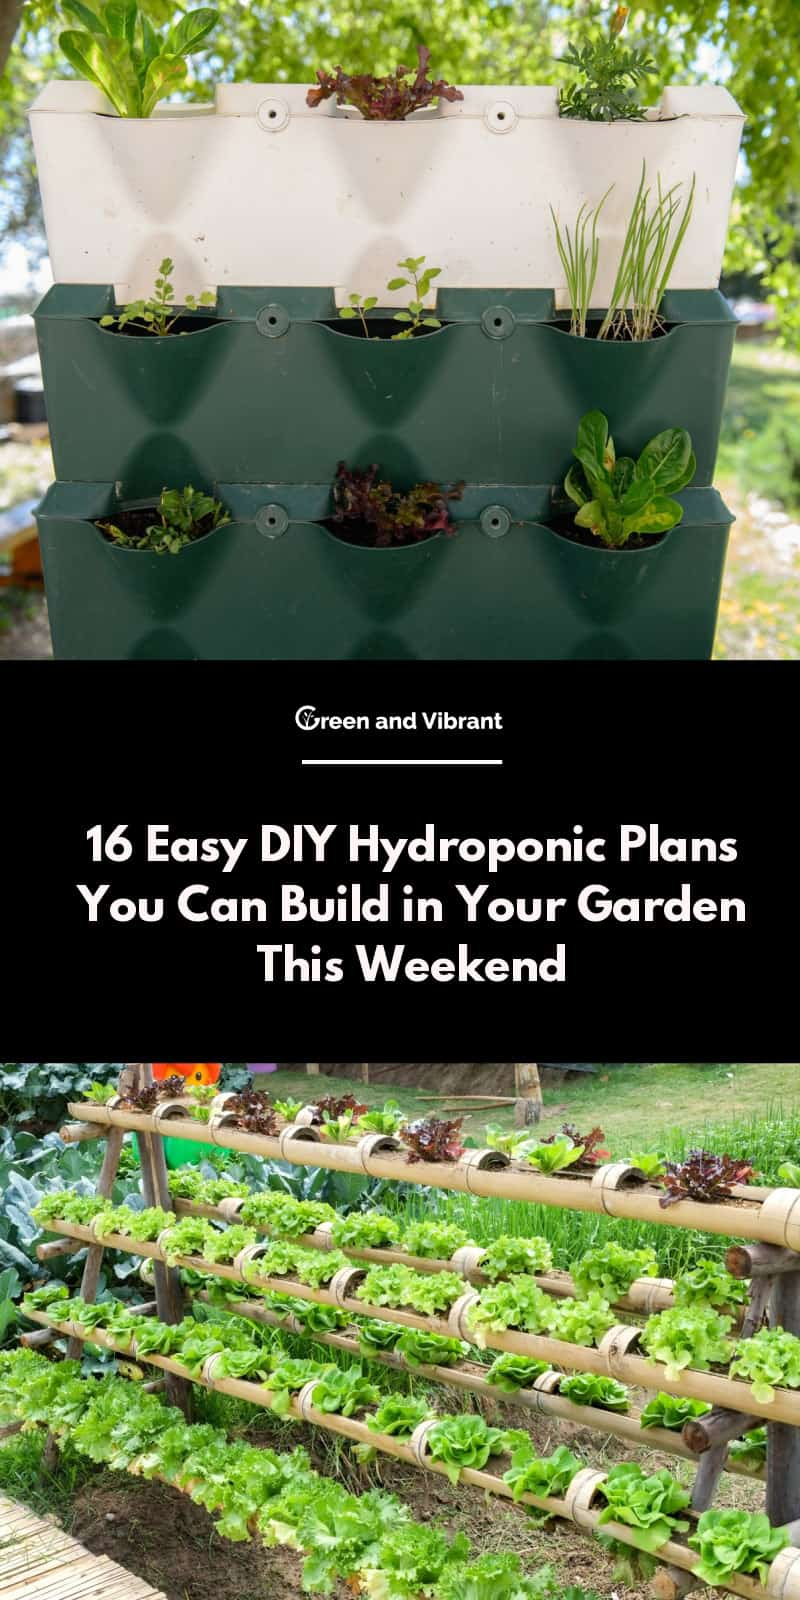 16 Easy DIY Hydroponic Plans You Can Build in Your Garden This Weekend